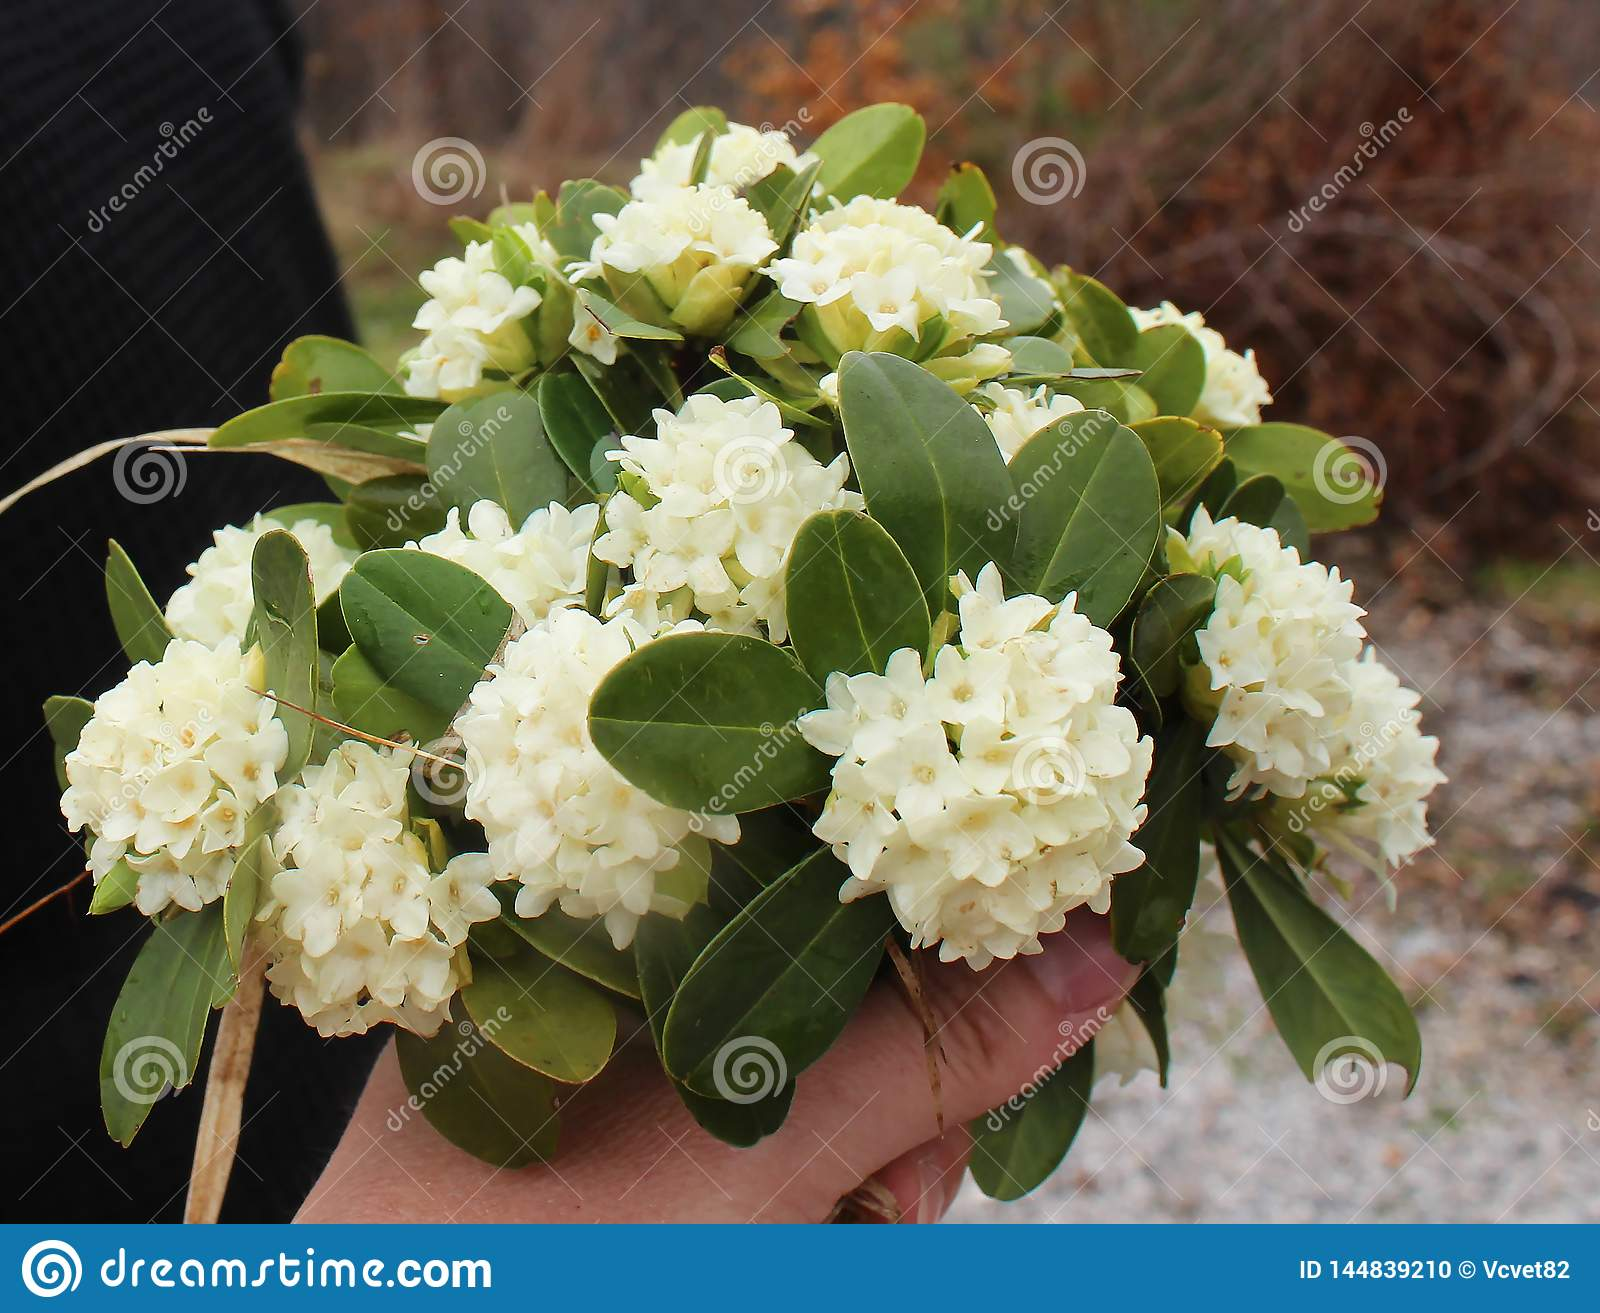 Beautiful white flowers of Daphne blagayana in blossom, wild from the forest